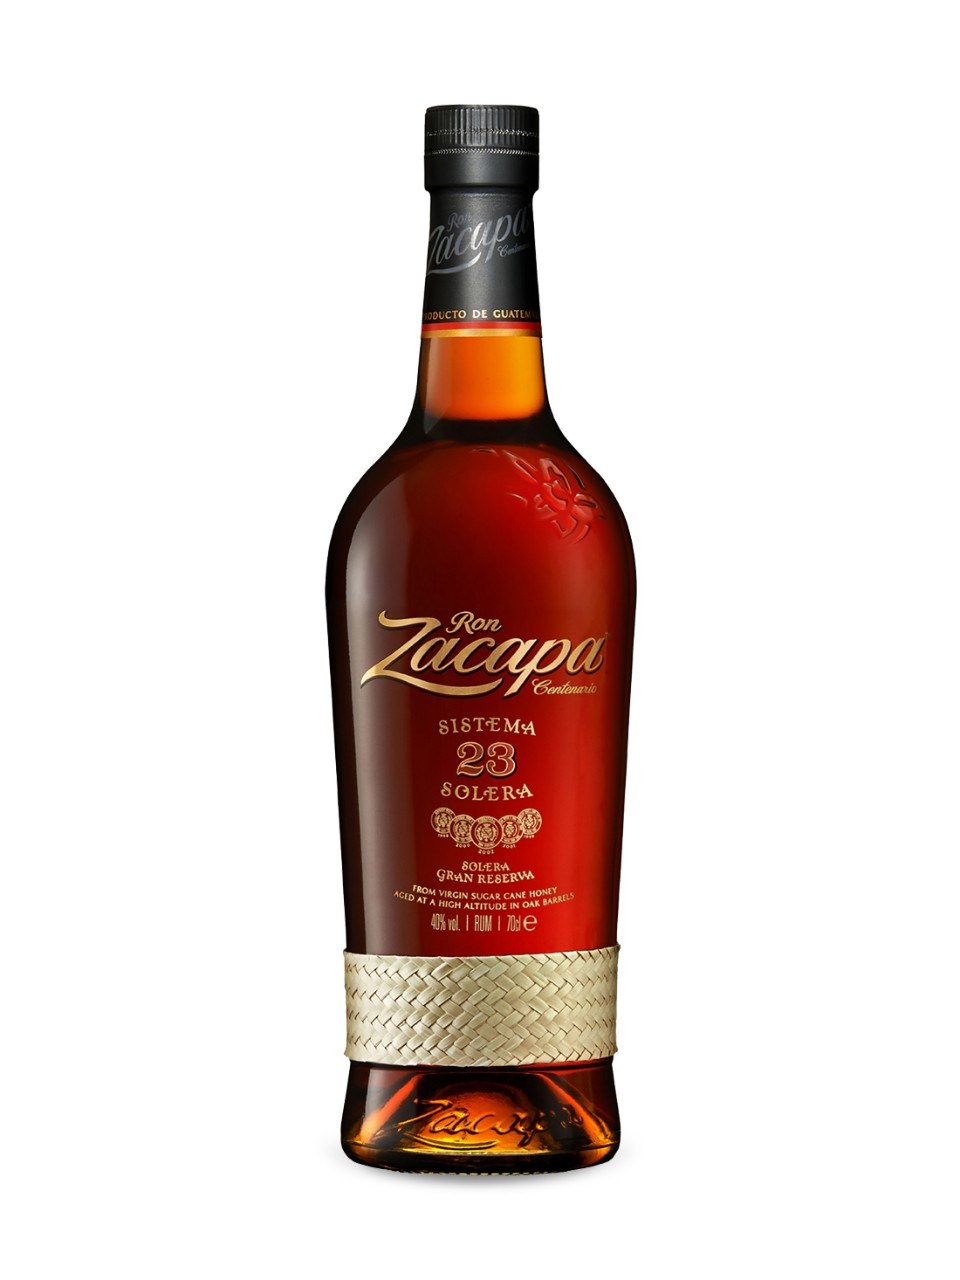 Ron zacapa 23 centenario rum lcbo for Food bar zacapa